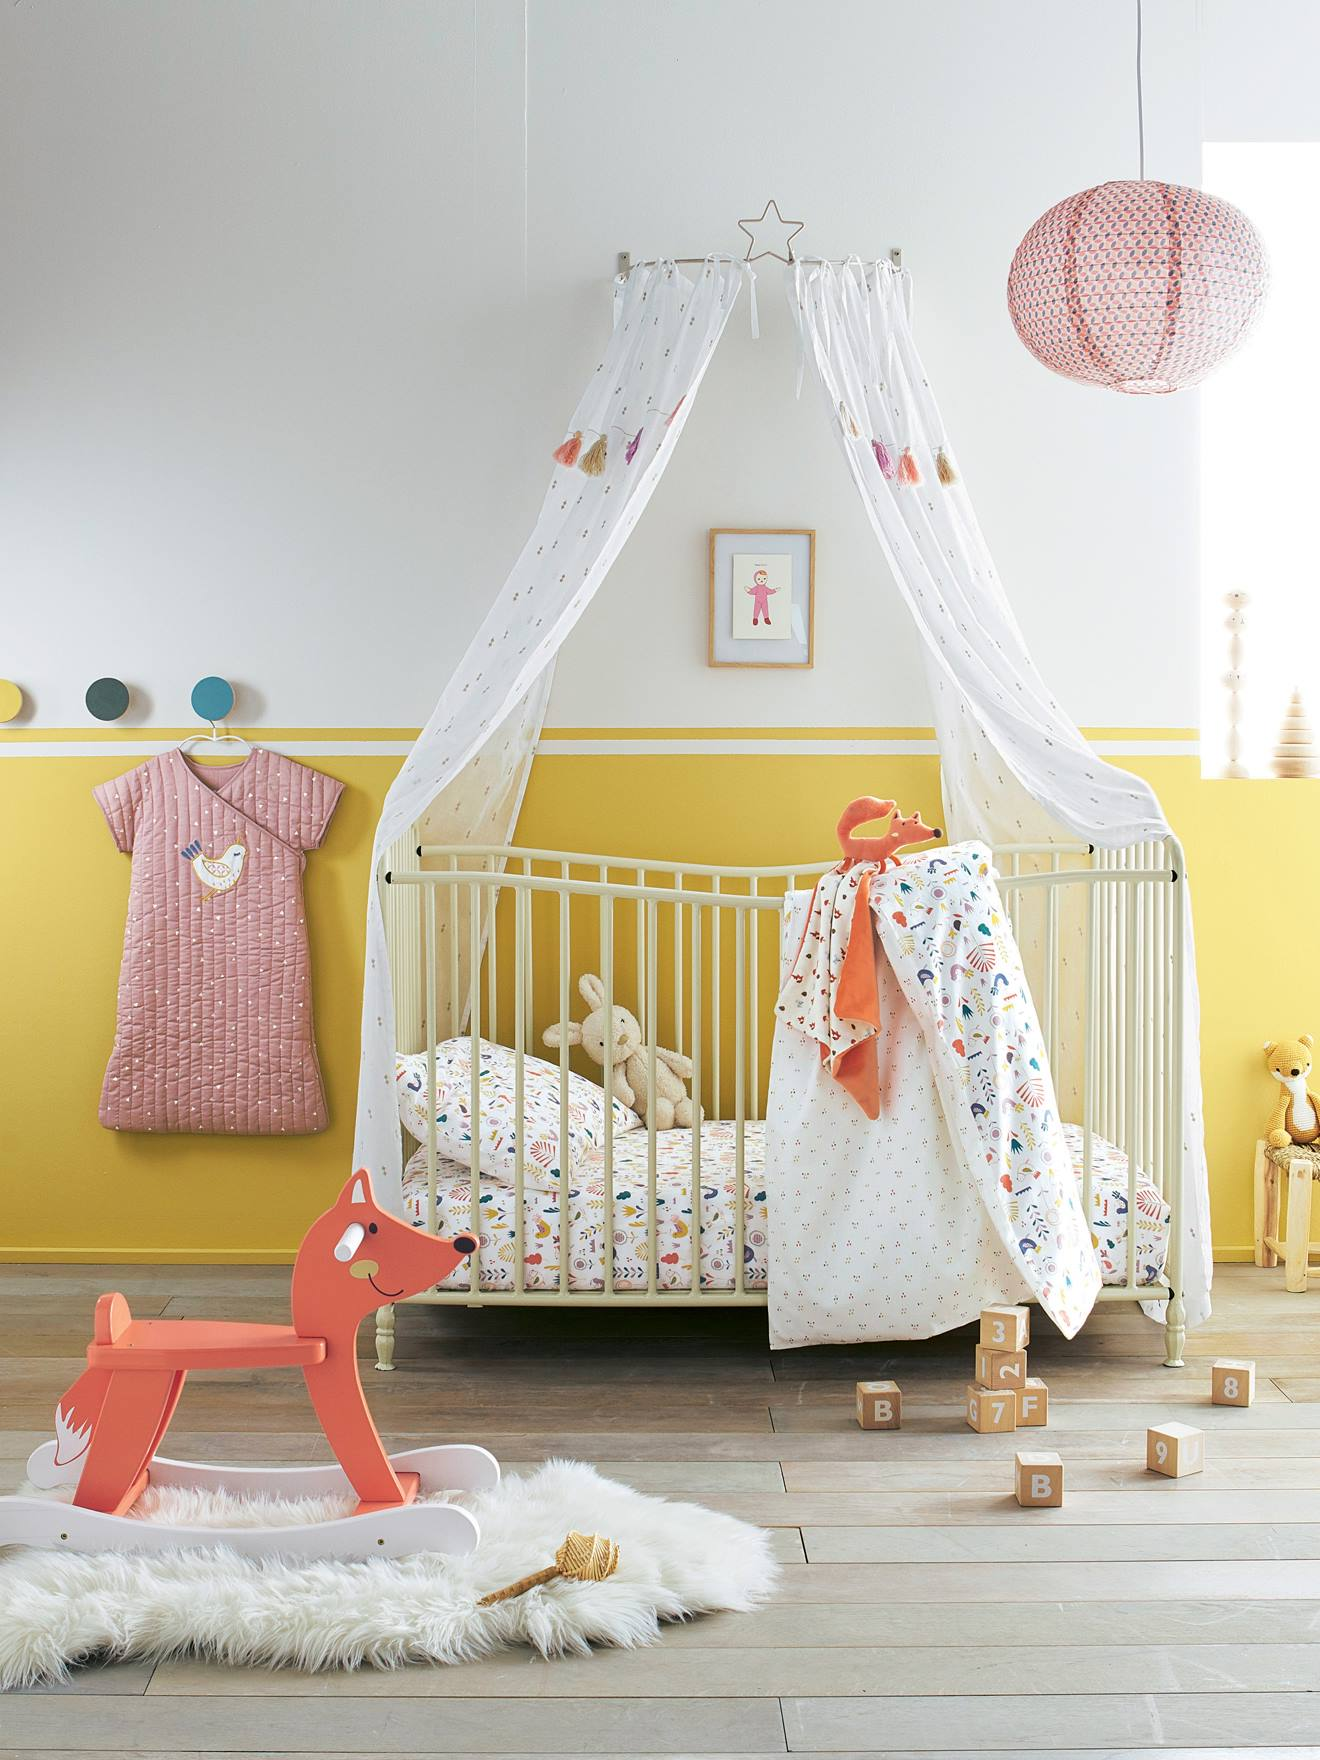 Interiors Ciel De Lit canopy cradle - grey, bedding & decor